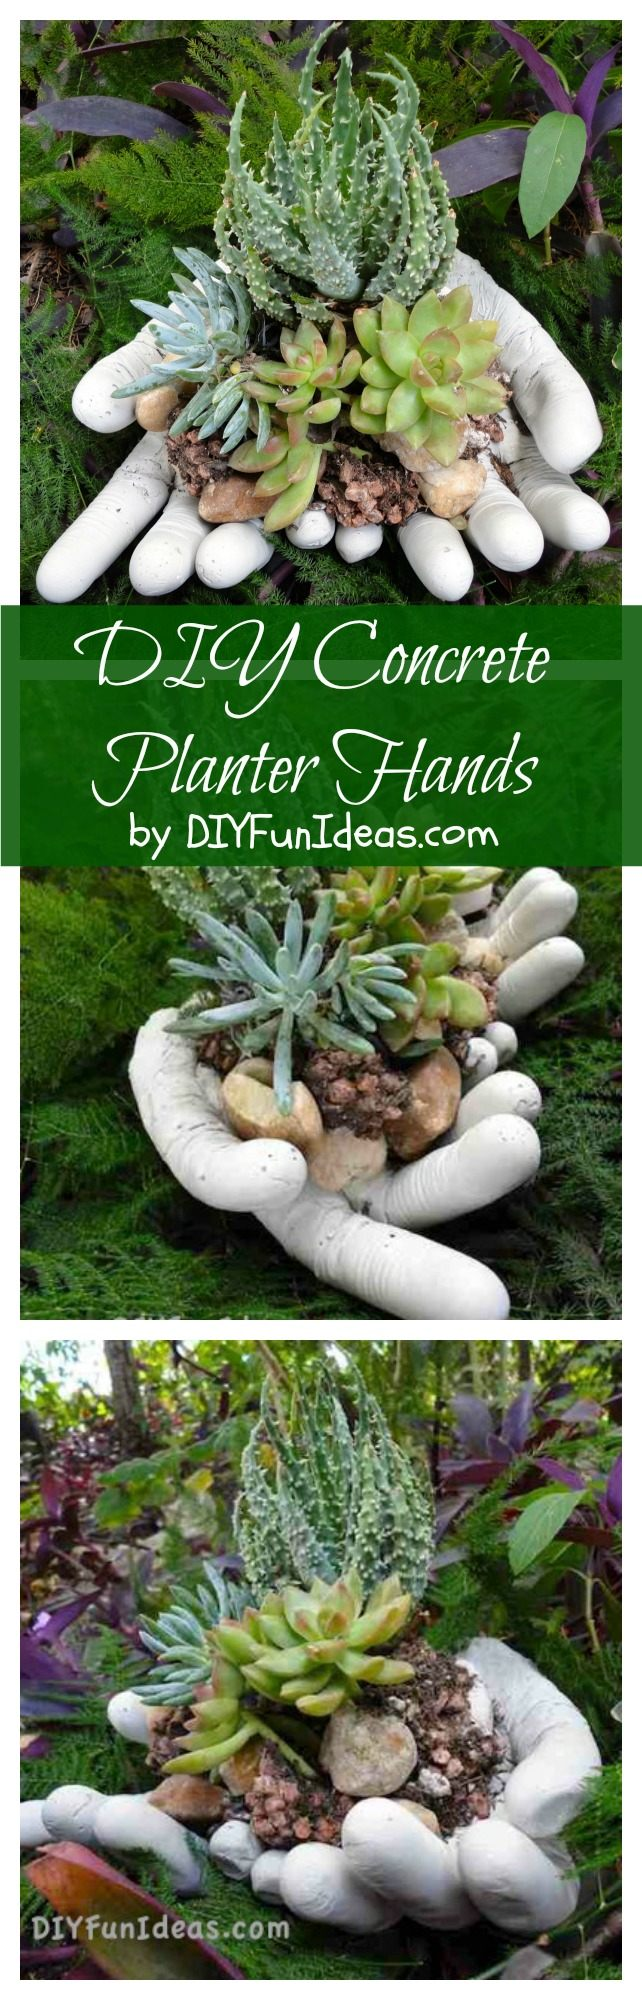 DIY succulent concrete planter hands